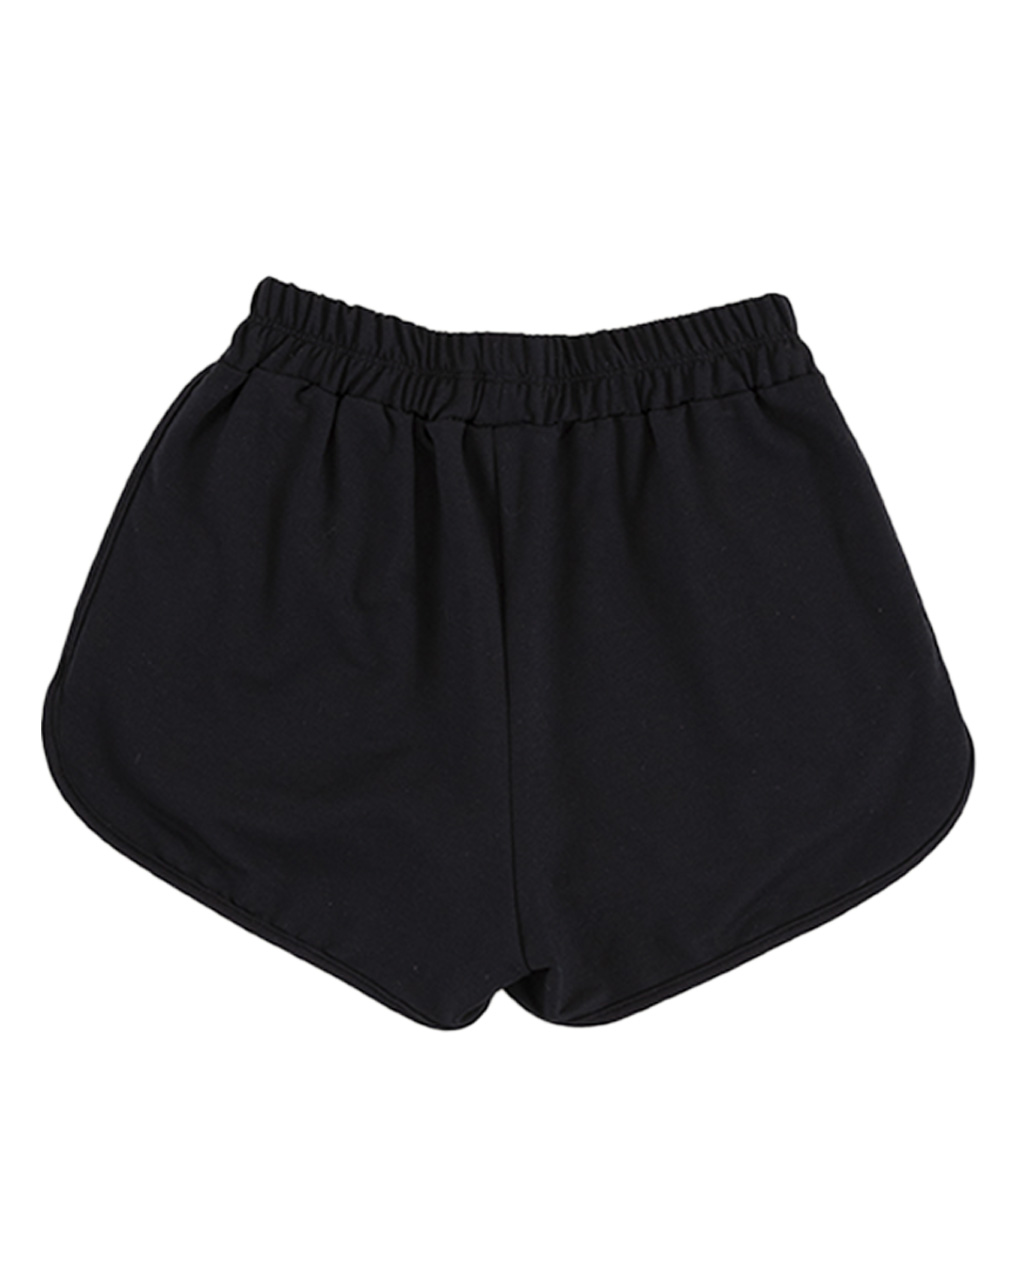 Shorts Teen Regulagem Lateral Preto Two In